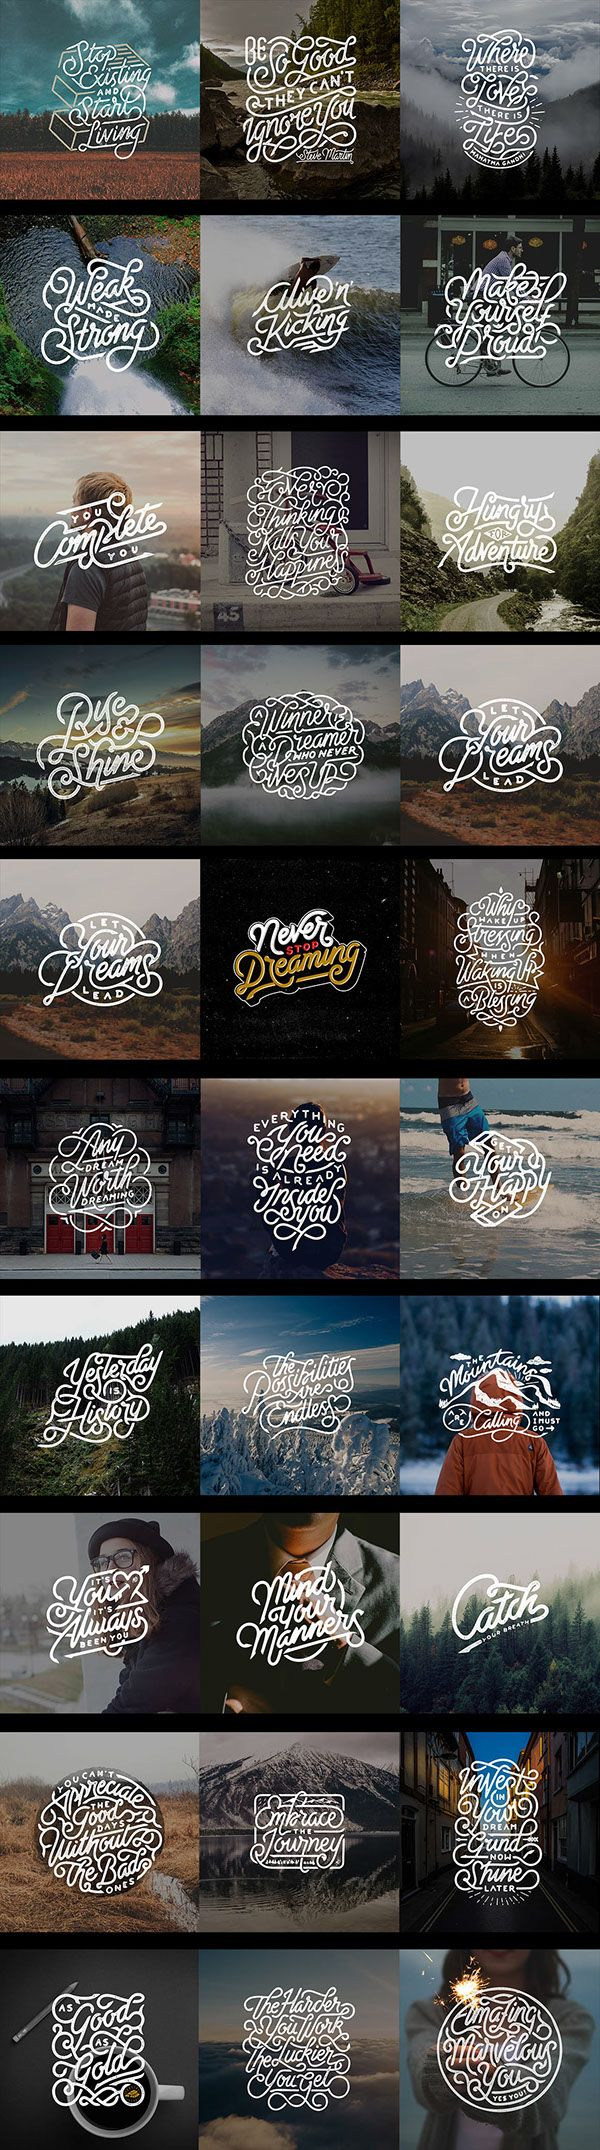 Hi guys :). Here is some of my Hand Lettered Quotes collection. Now available for purchase. You can use this for wallpaper, poster, tshirt, etc but not for commercial use. Email me if you need extended license for the design :)30 Hand Lettering quotes,w…